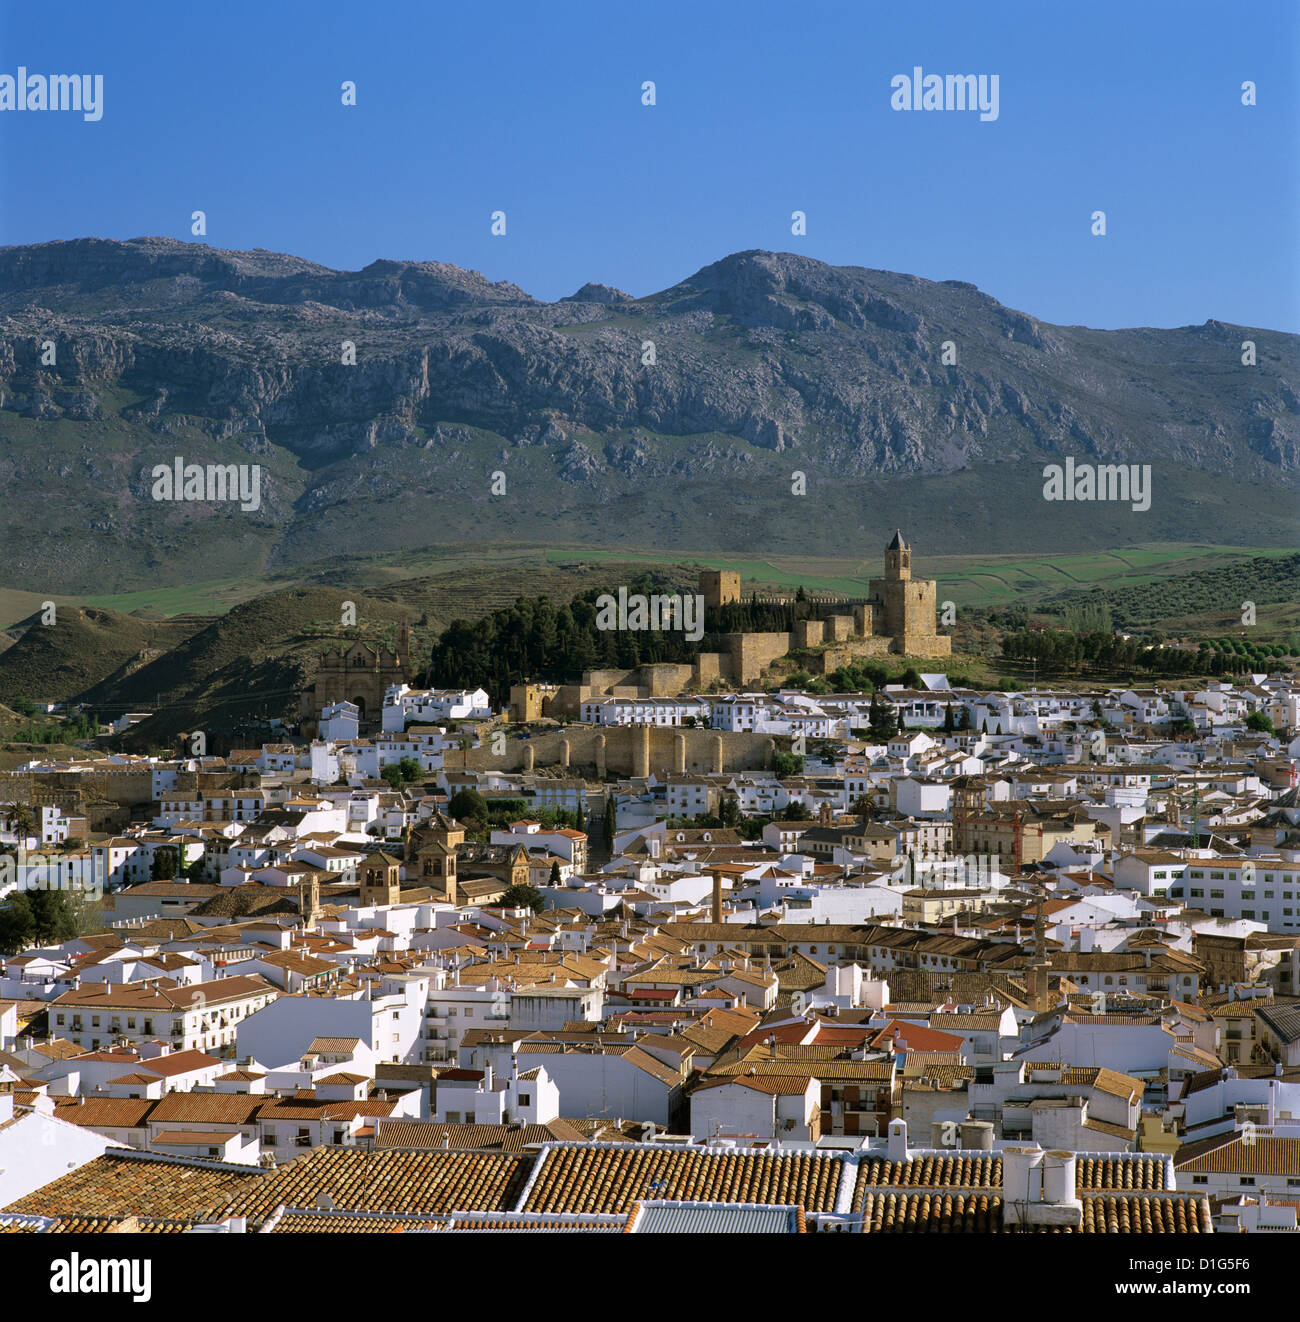 Alcazaba and old town, Antequera, Andalucia, Spain, Europe - Stock Image